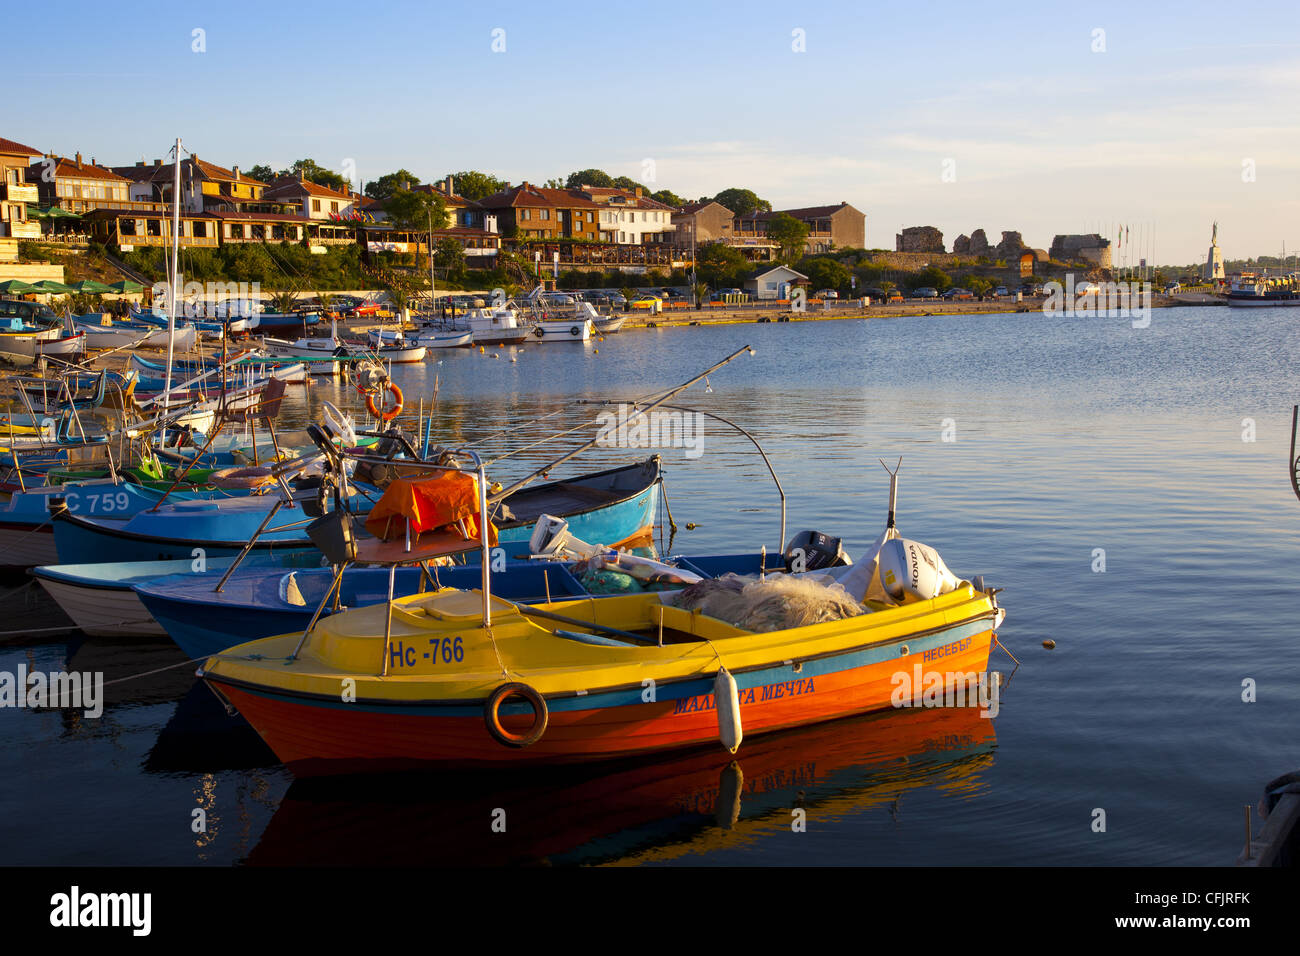 Fishing boats and view towards ramparts and ruins of the medieval fortification walls, Nessebar, Black Sea, Bulgaria, - Stock Image